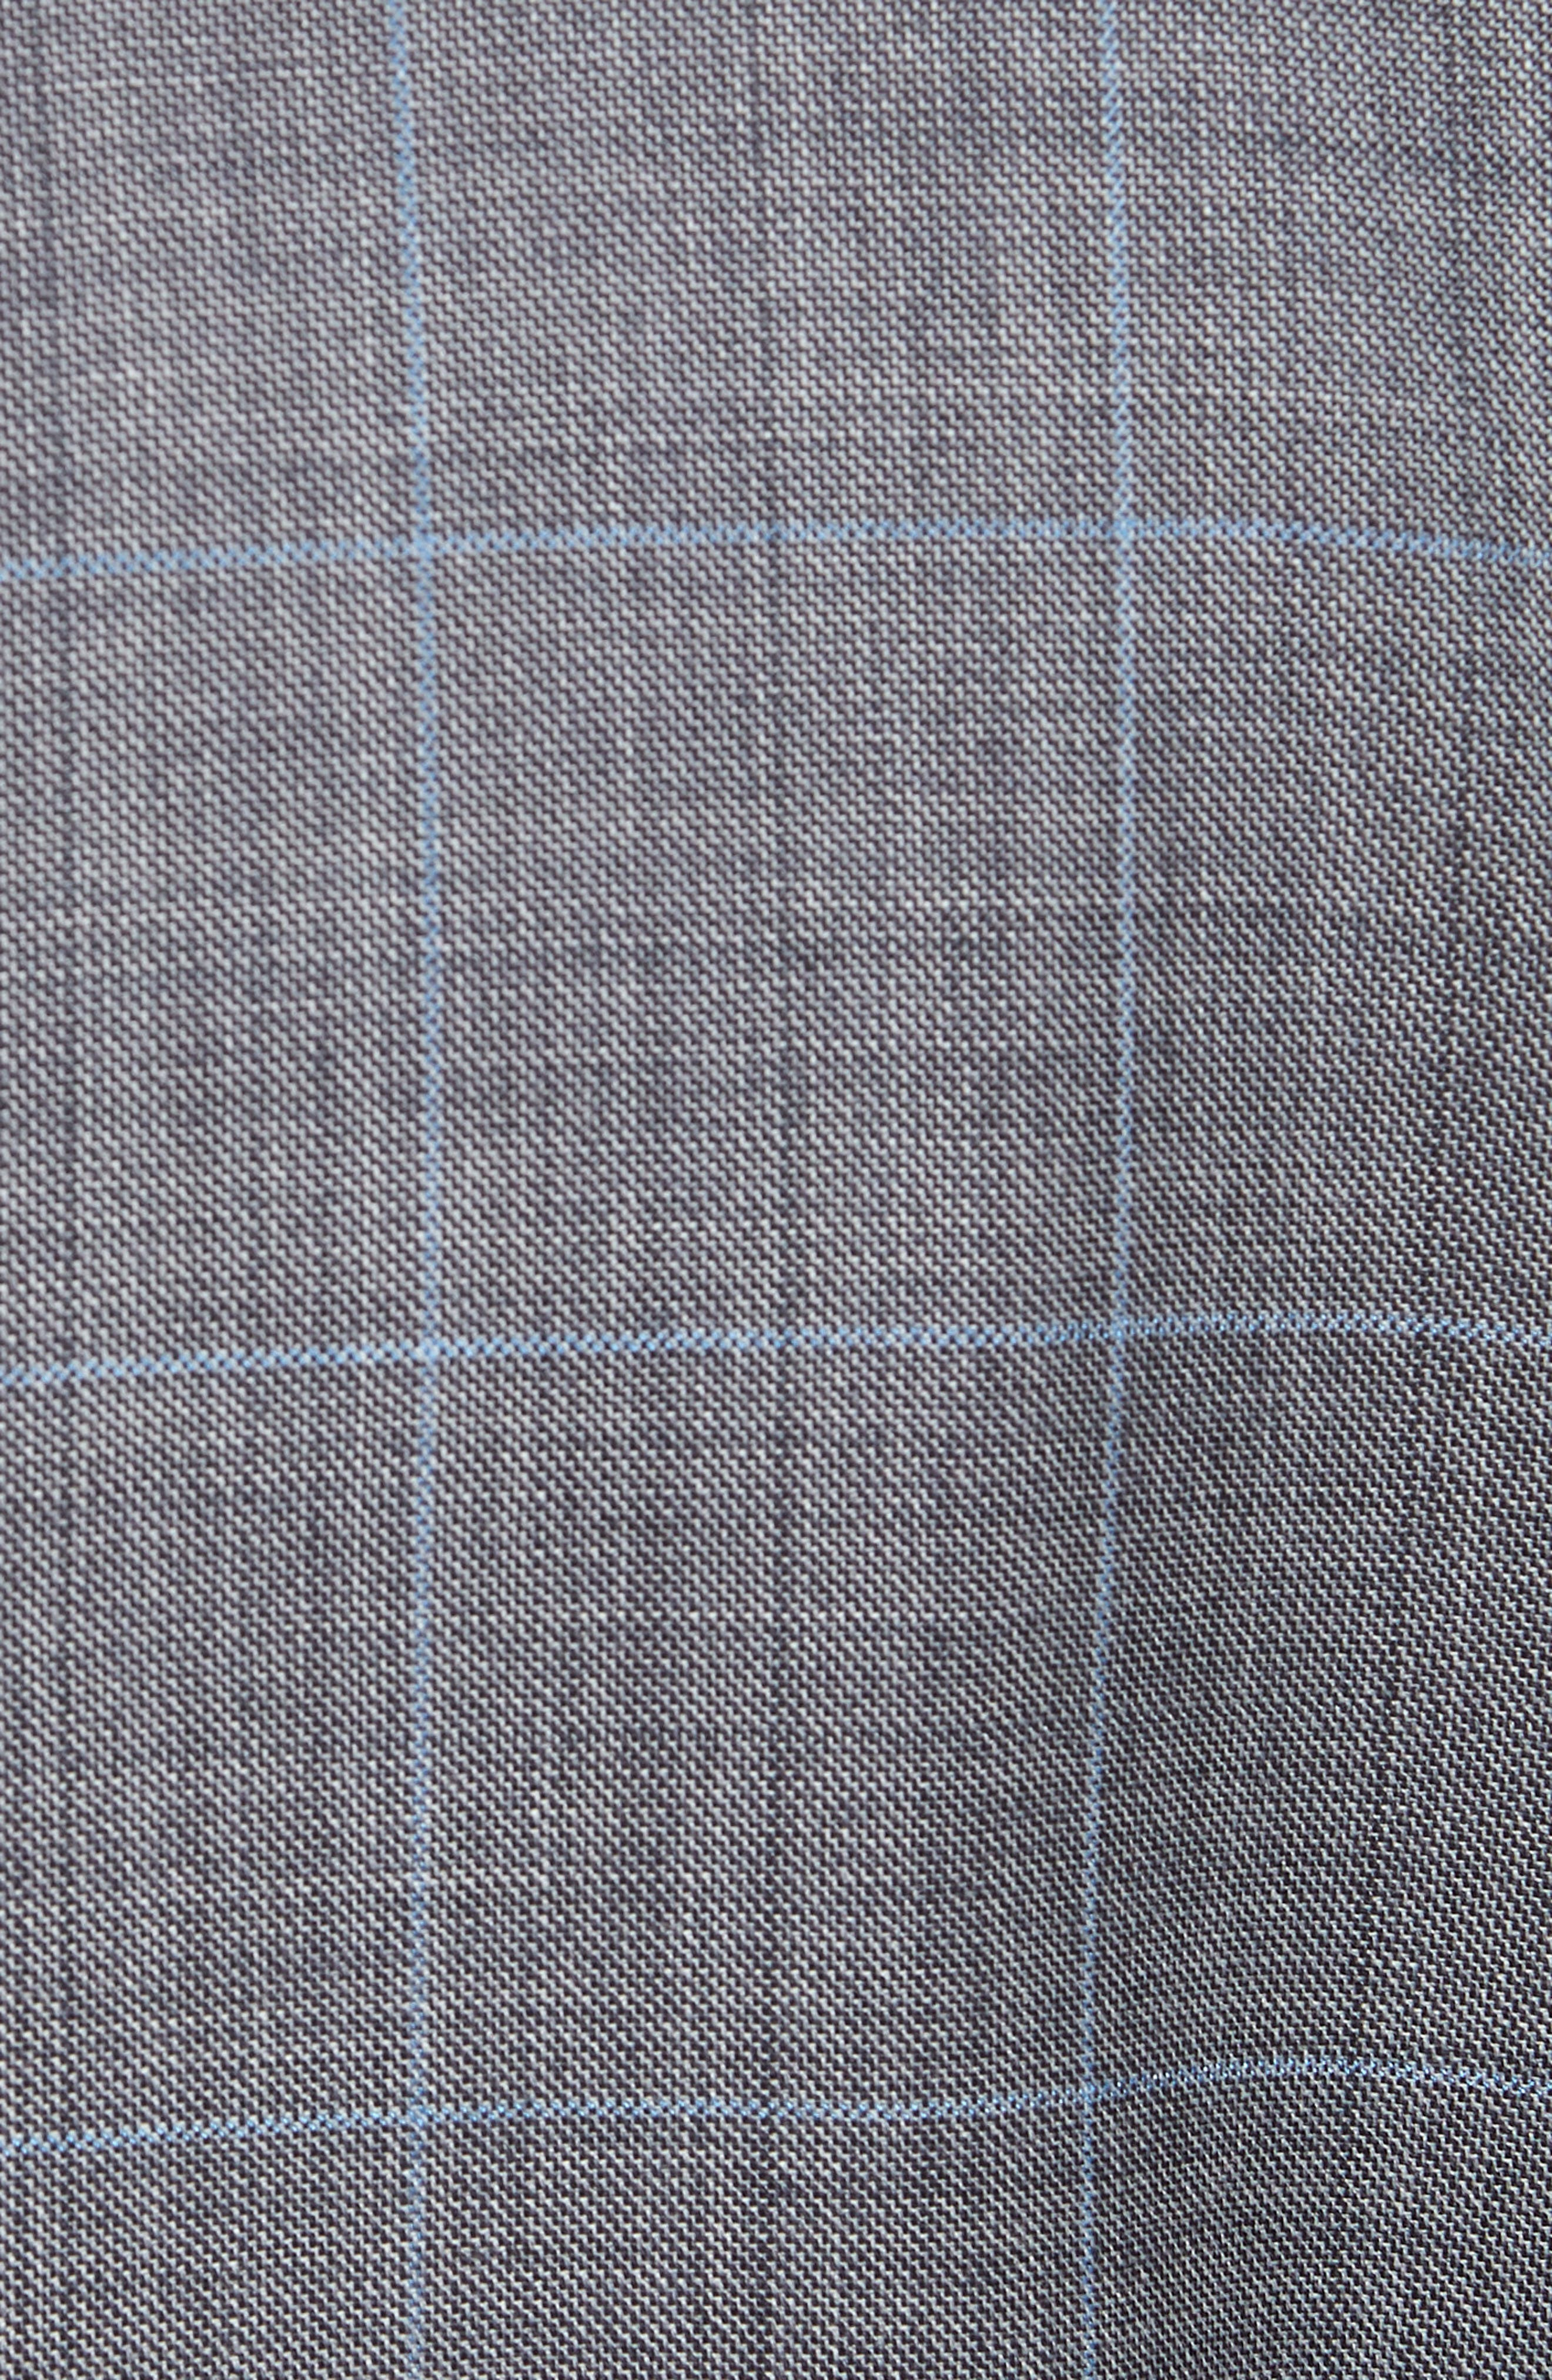 Classic Fit Windowpane Wool Suit,                             Alternate thumbnail 7, color,                             050